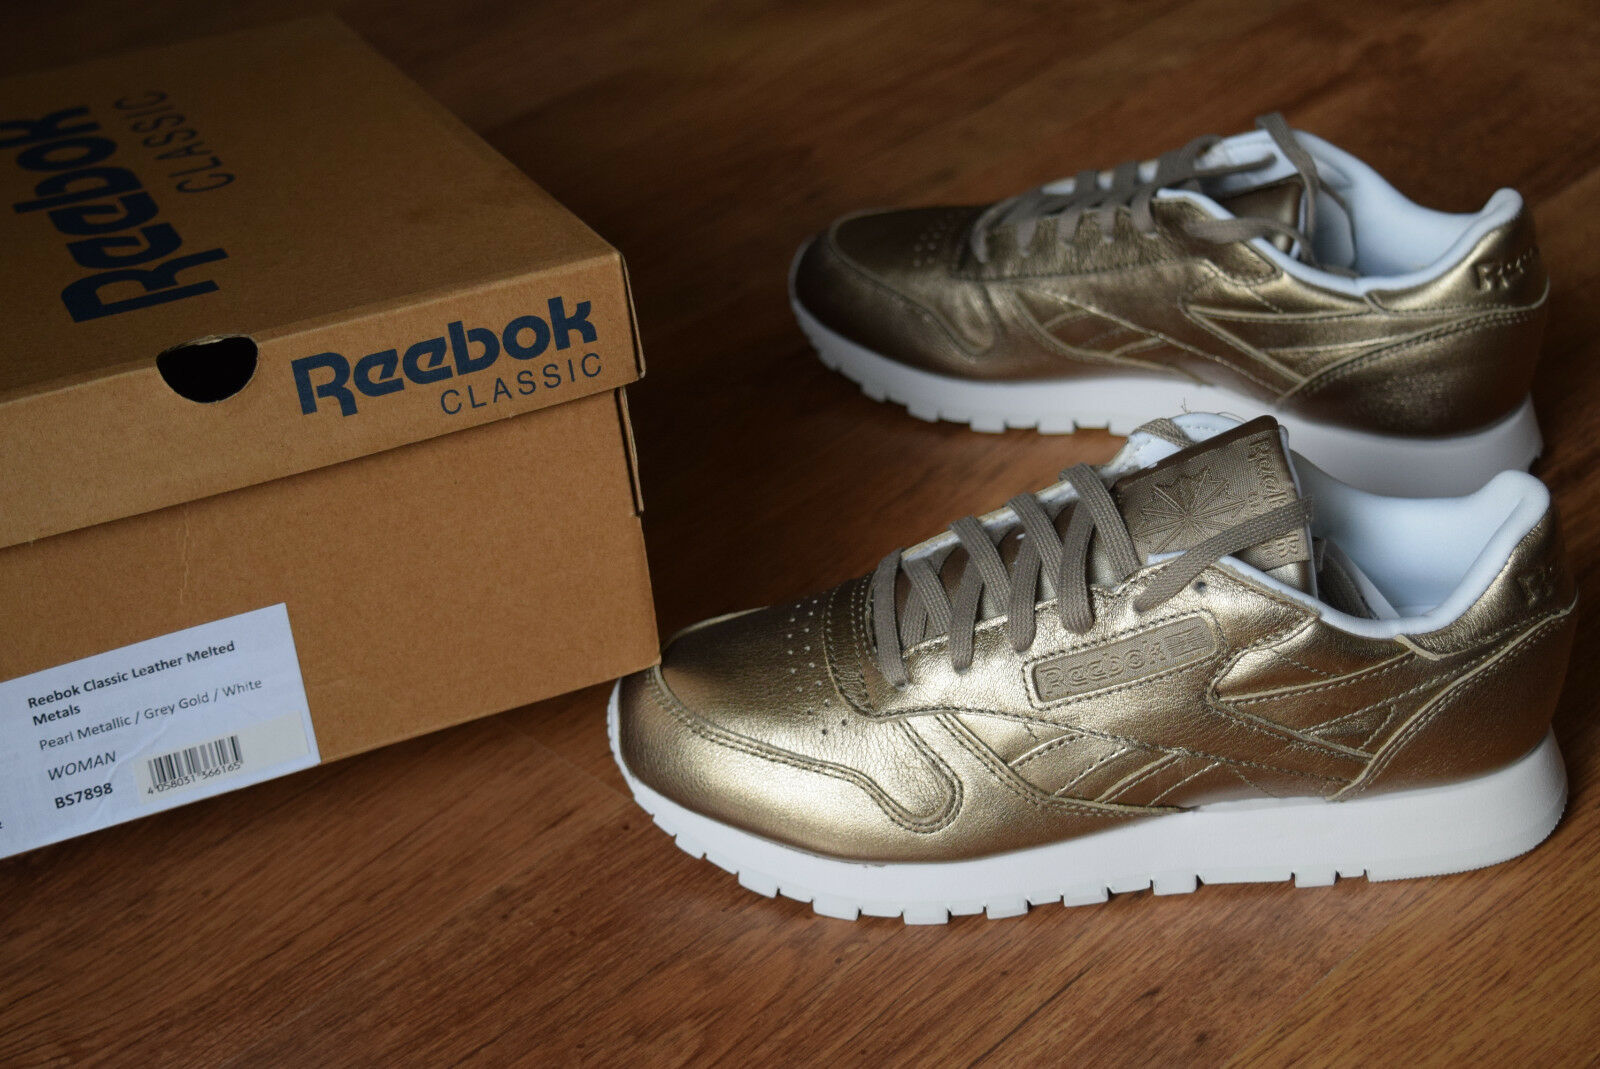 Reebok Classic Leather 36 37 38 38,5 metals 39 40 BS7898 melted metals 38,5 princess spirit fef46e